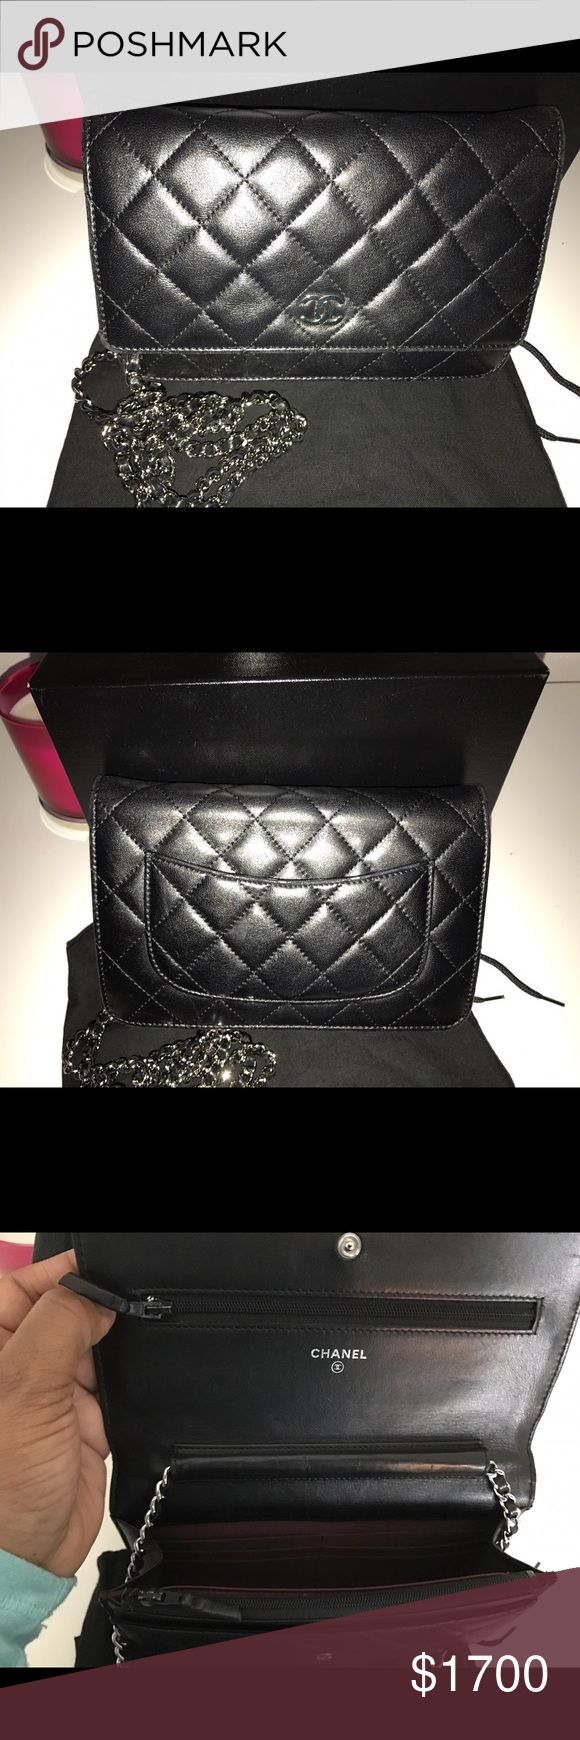 Authentic Chanel Woc Classic Black Lambskin mini with silver hardware wallet on a chain (WOC). This bag has been used frequently but still has a lot of life left. Flaws in pictures. Slight wear to corners wear and trim and to top of the back pocket from rubbing. No stains or smells in good condition. Comes with box and dust bag. Has hologram sticker inside no card. Size 7x 5x 1 lower thru 🅿️🅿️ CHANEL Bags Crossbody Bags